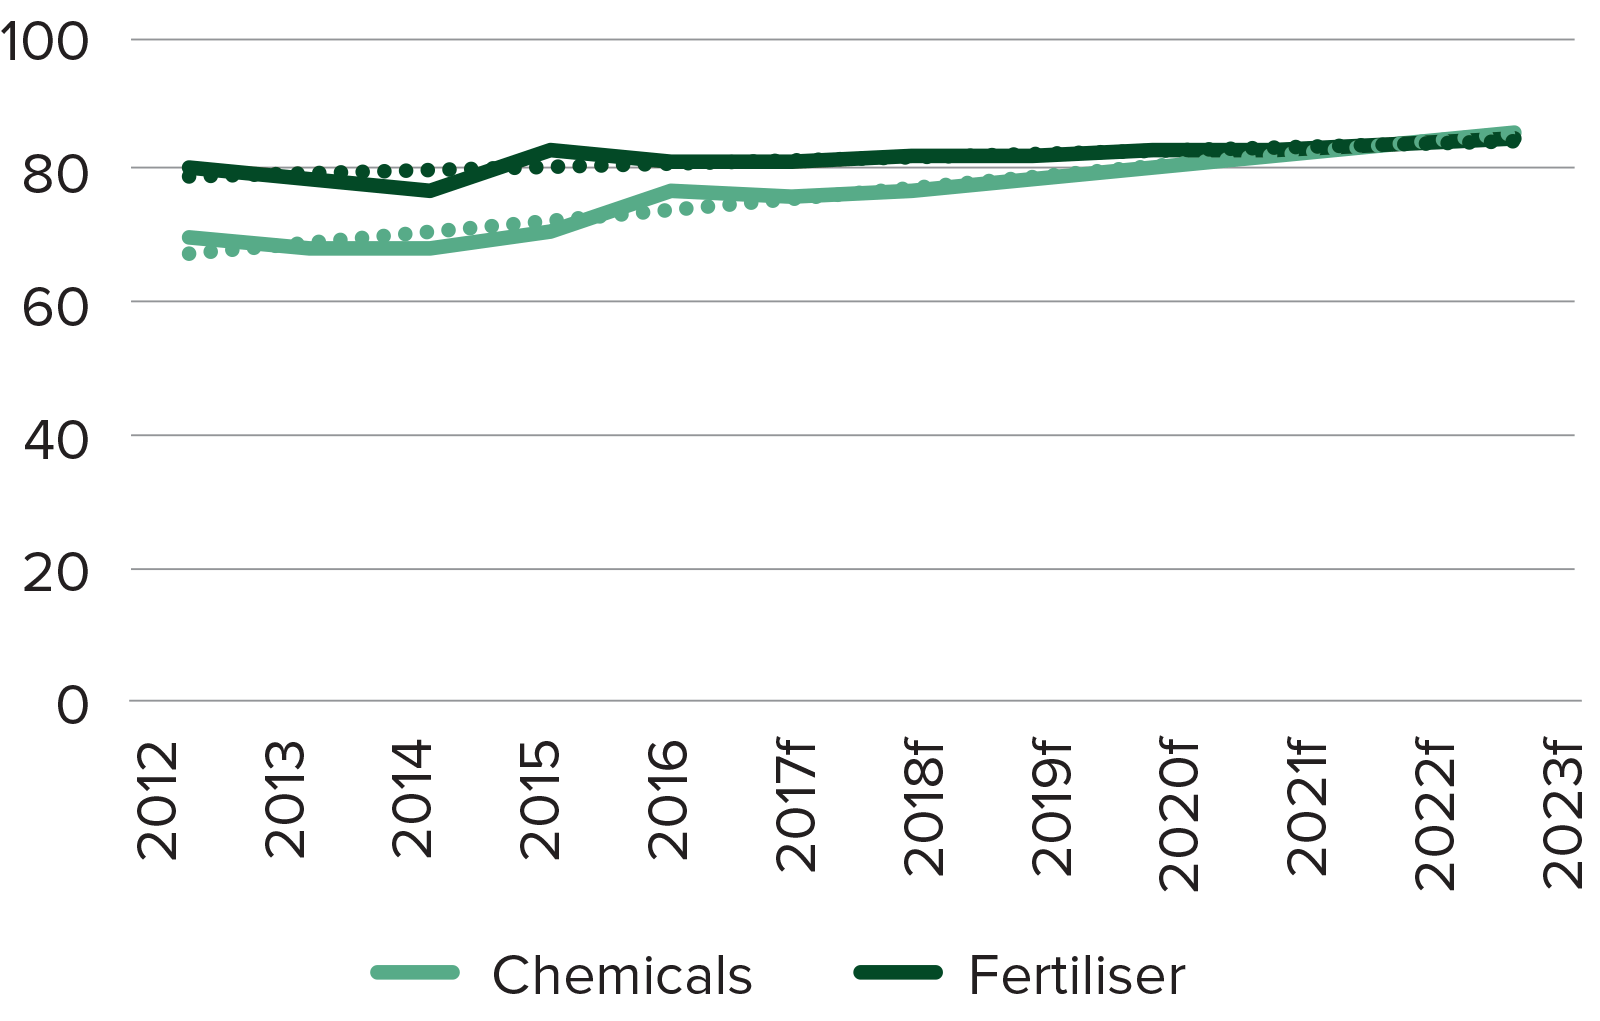 Figure 18: Medium-term trends average annual in chemical and fertiliser costs ($/ha)